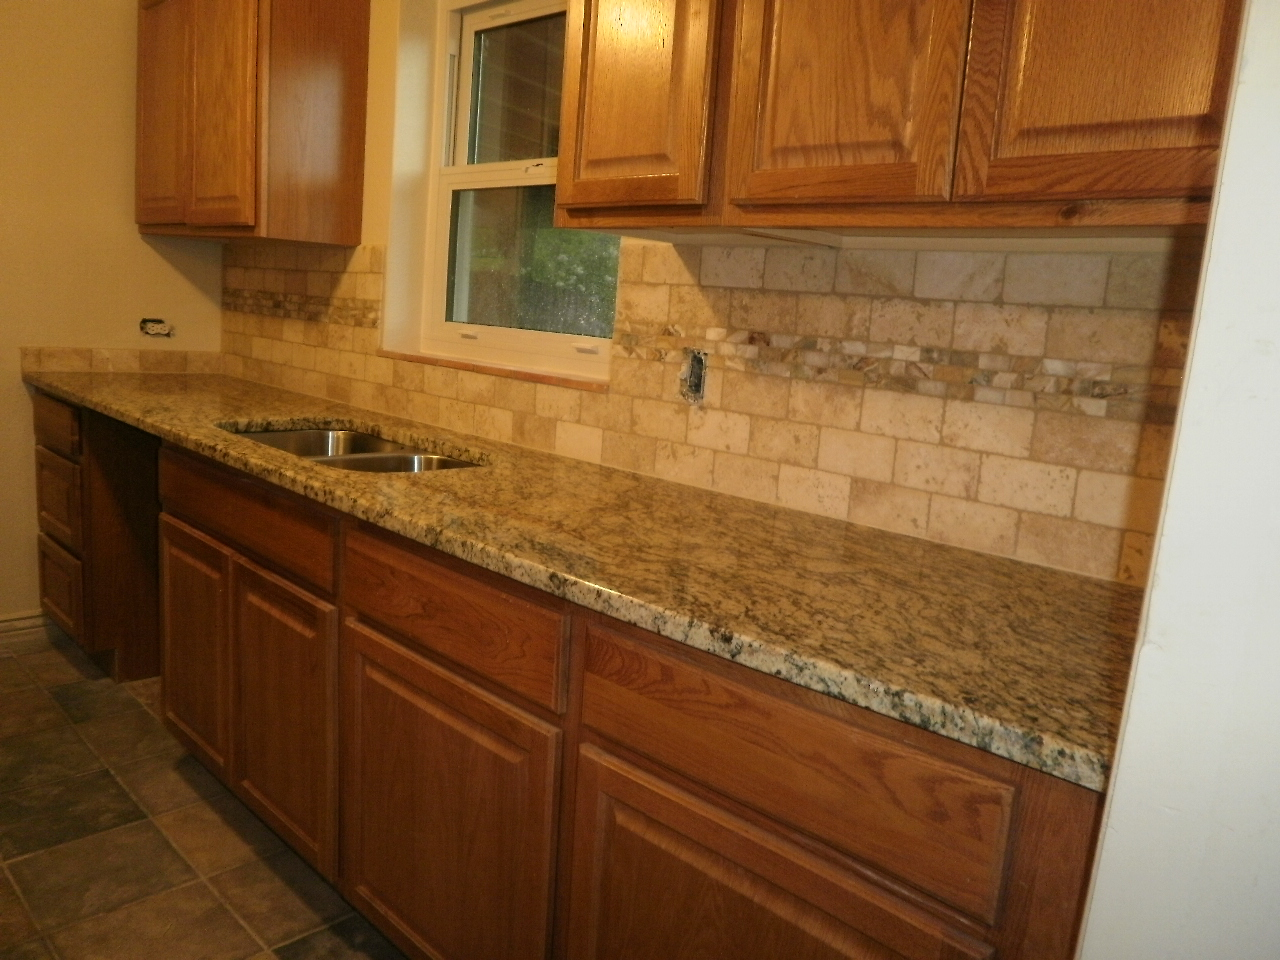 Santa cecilia granite backsplash ideas for Granite countertop kitchen ideas